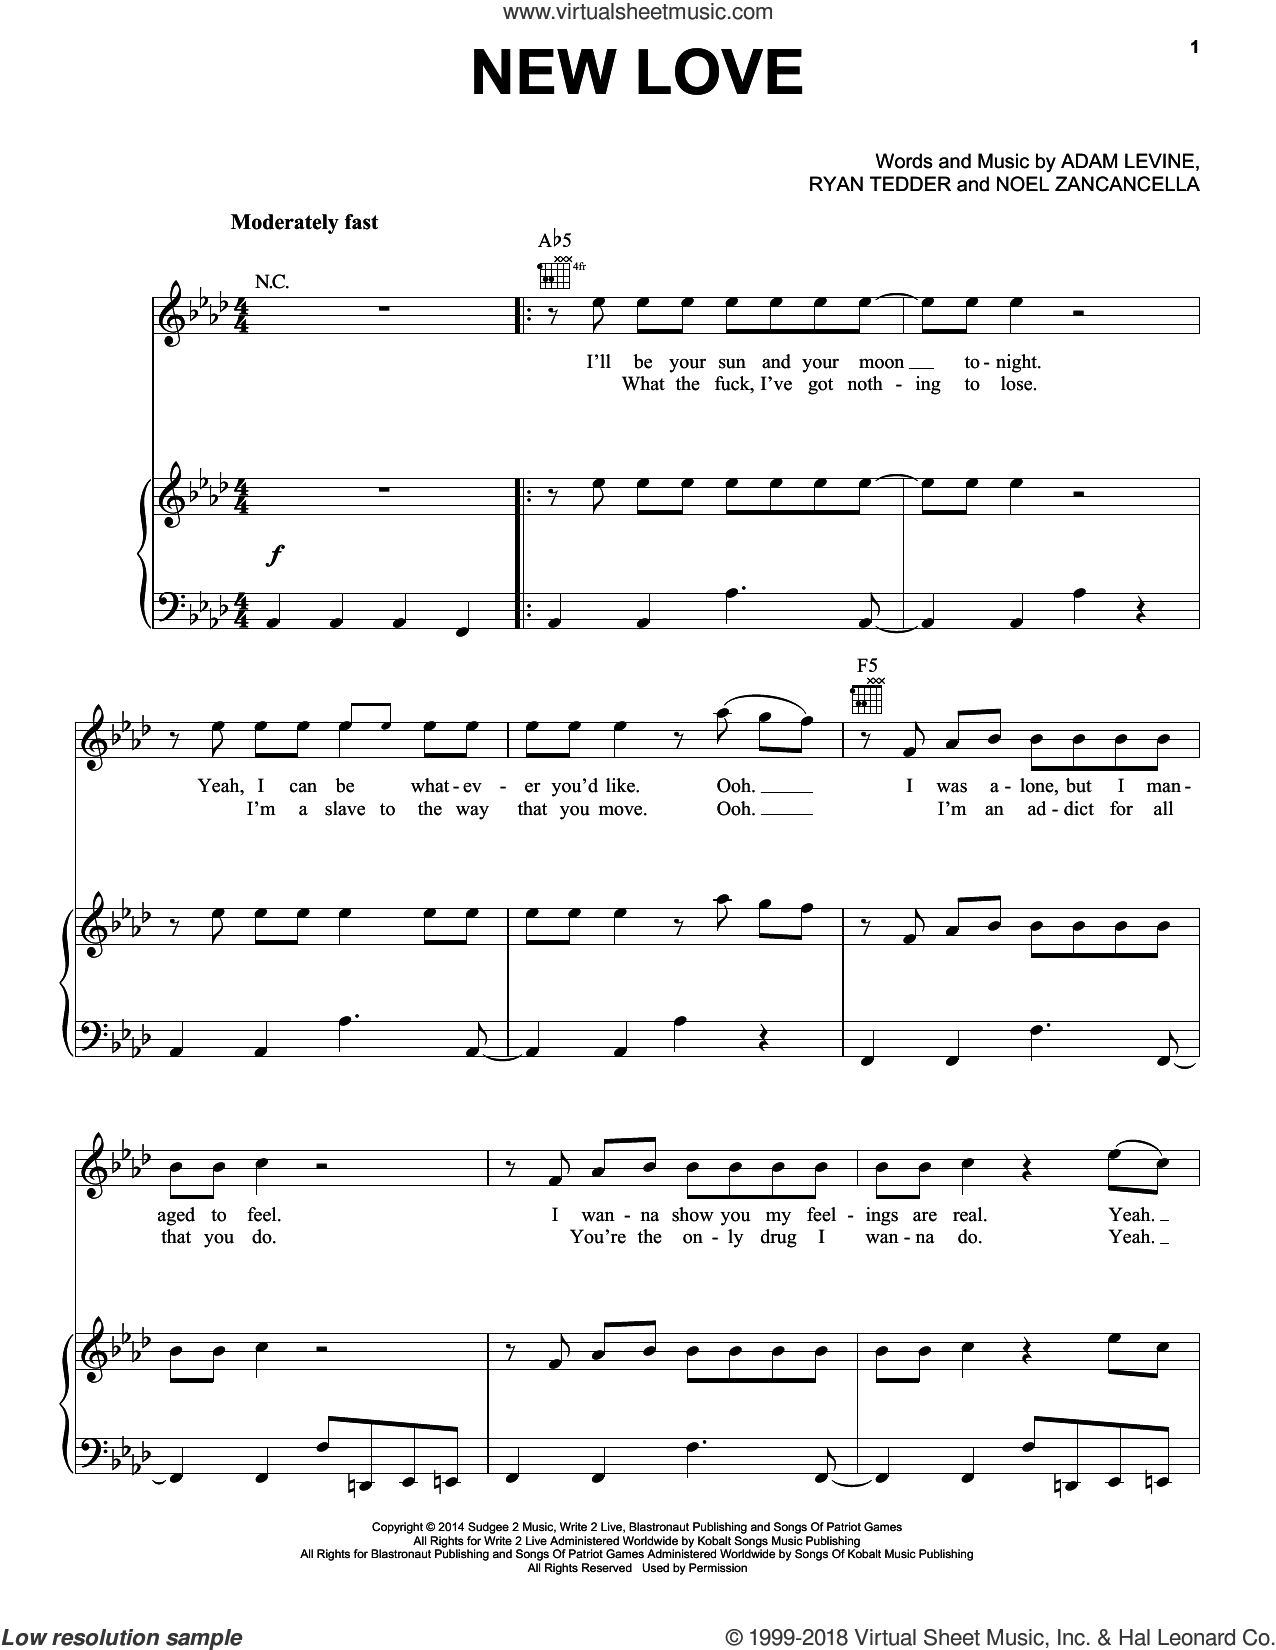 New Love sheet music for voice, piano or guitar by Ryan Tedder, Maroon 5, Adam Levine and Noel Zancanella. Score Image Preview.